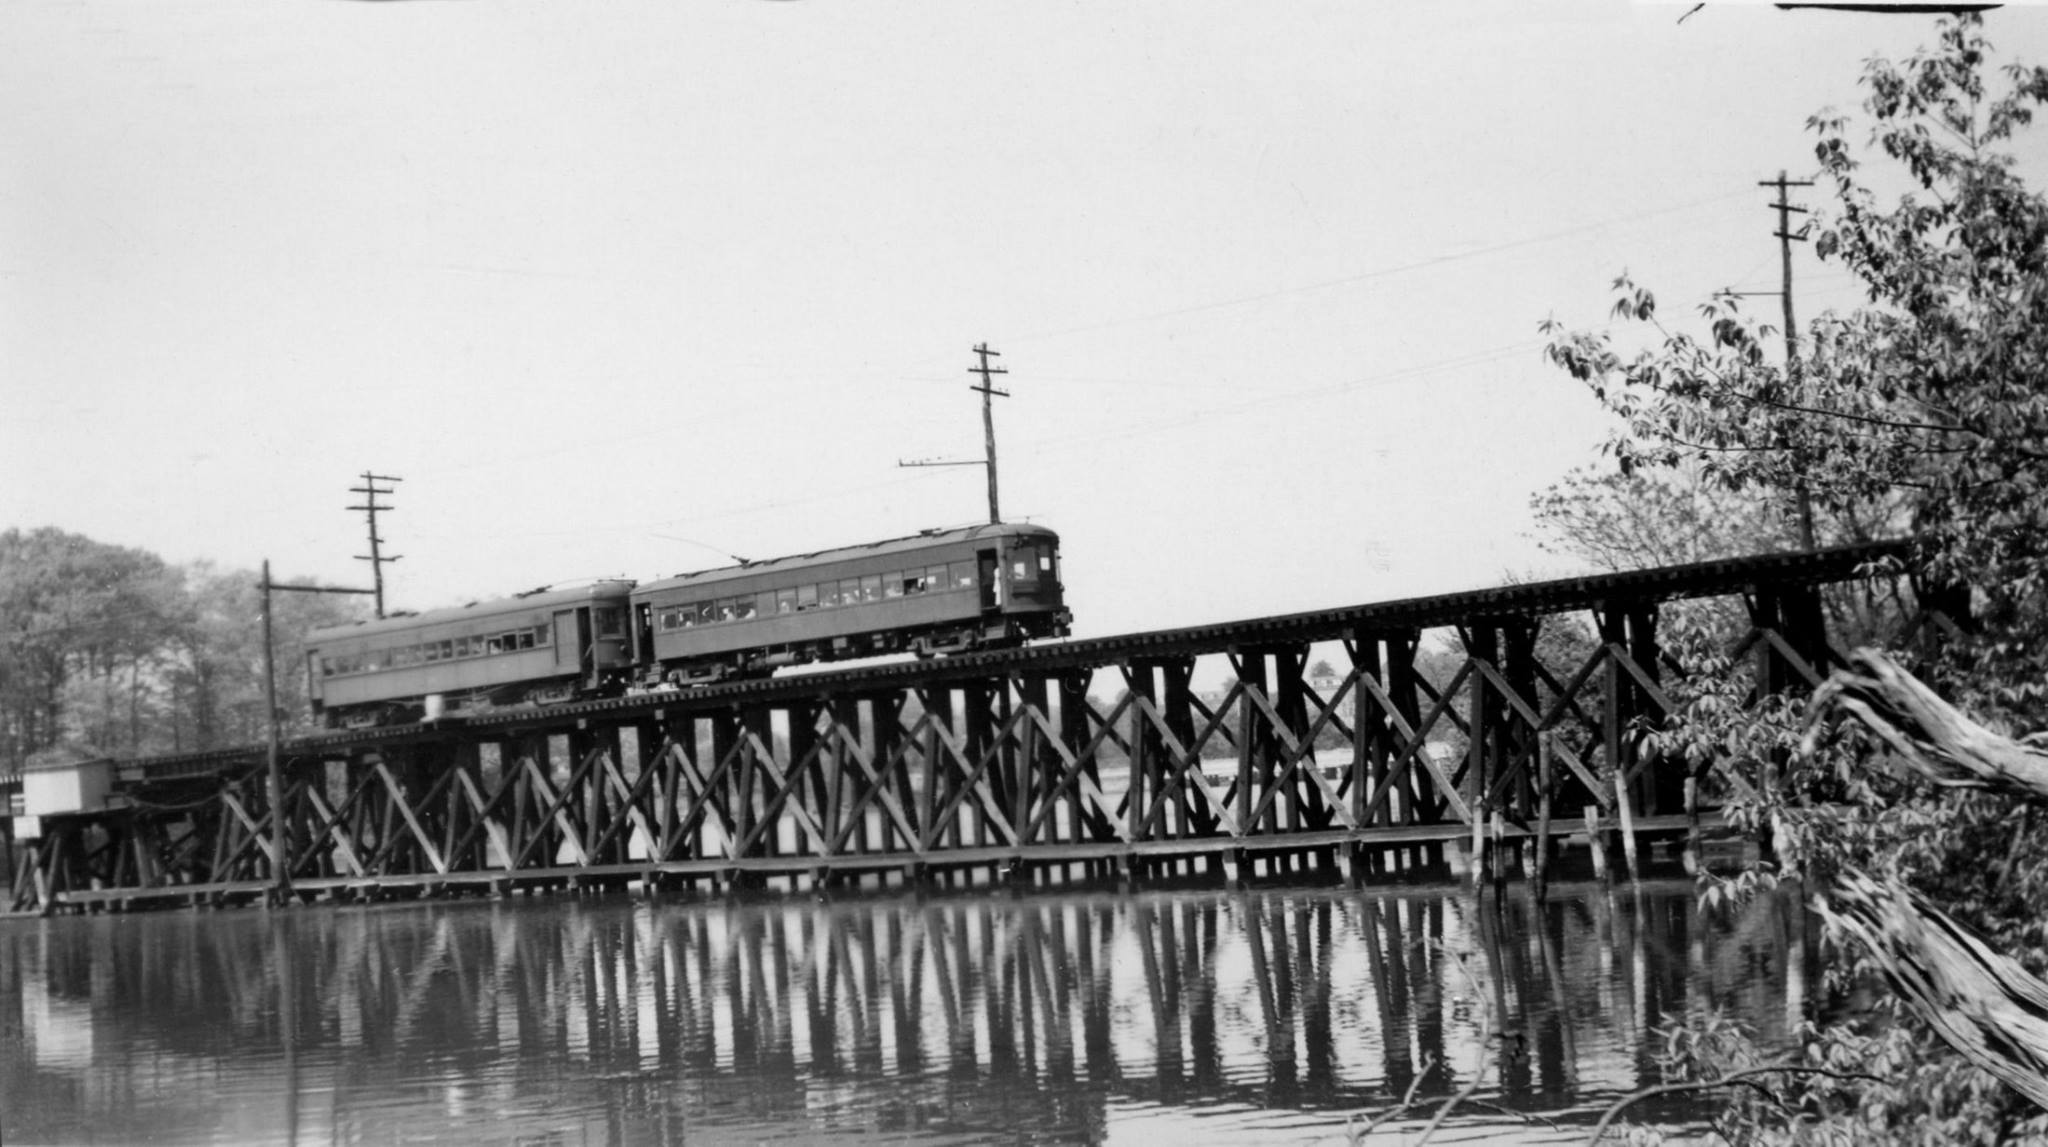 Baltimore & Annapolis Railroad crossing College Creek coming into Bladen Street Station. Annapolis, Maryland Date: 1940s. Source: Lee Rogers Collection.